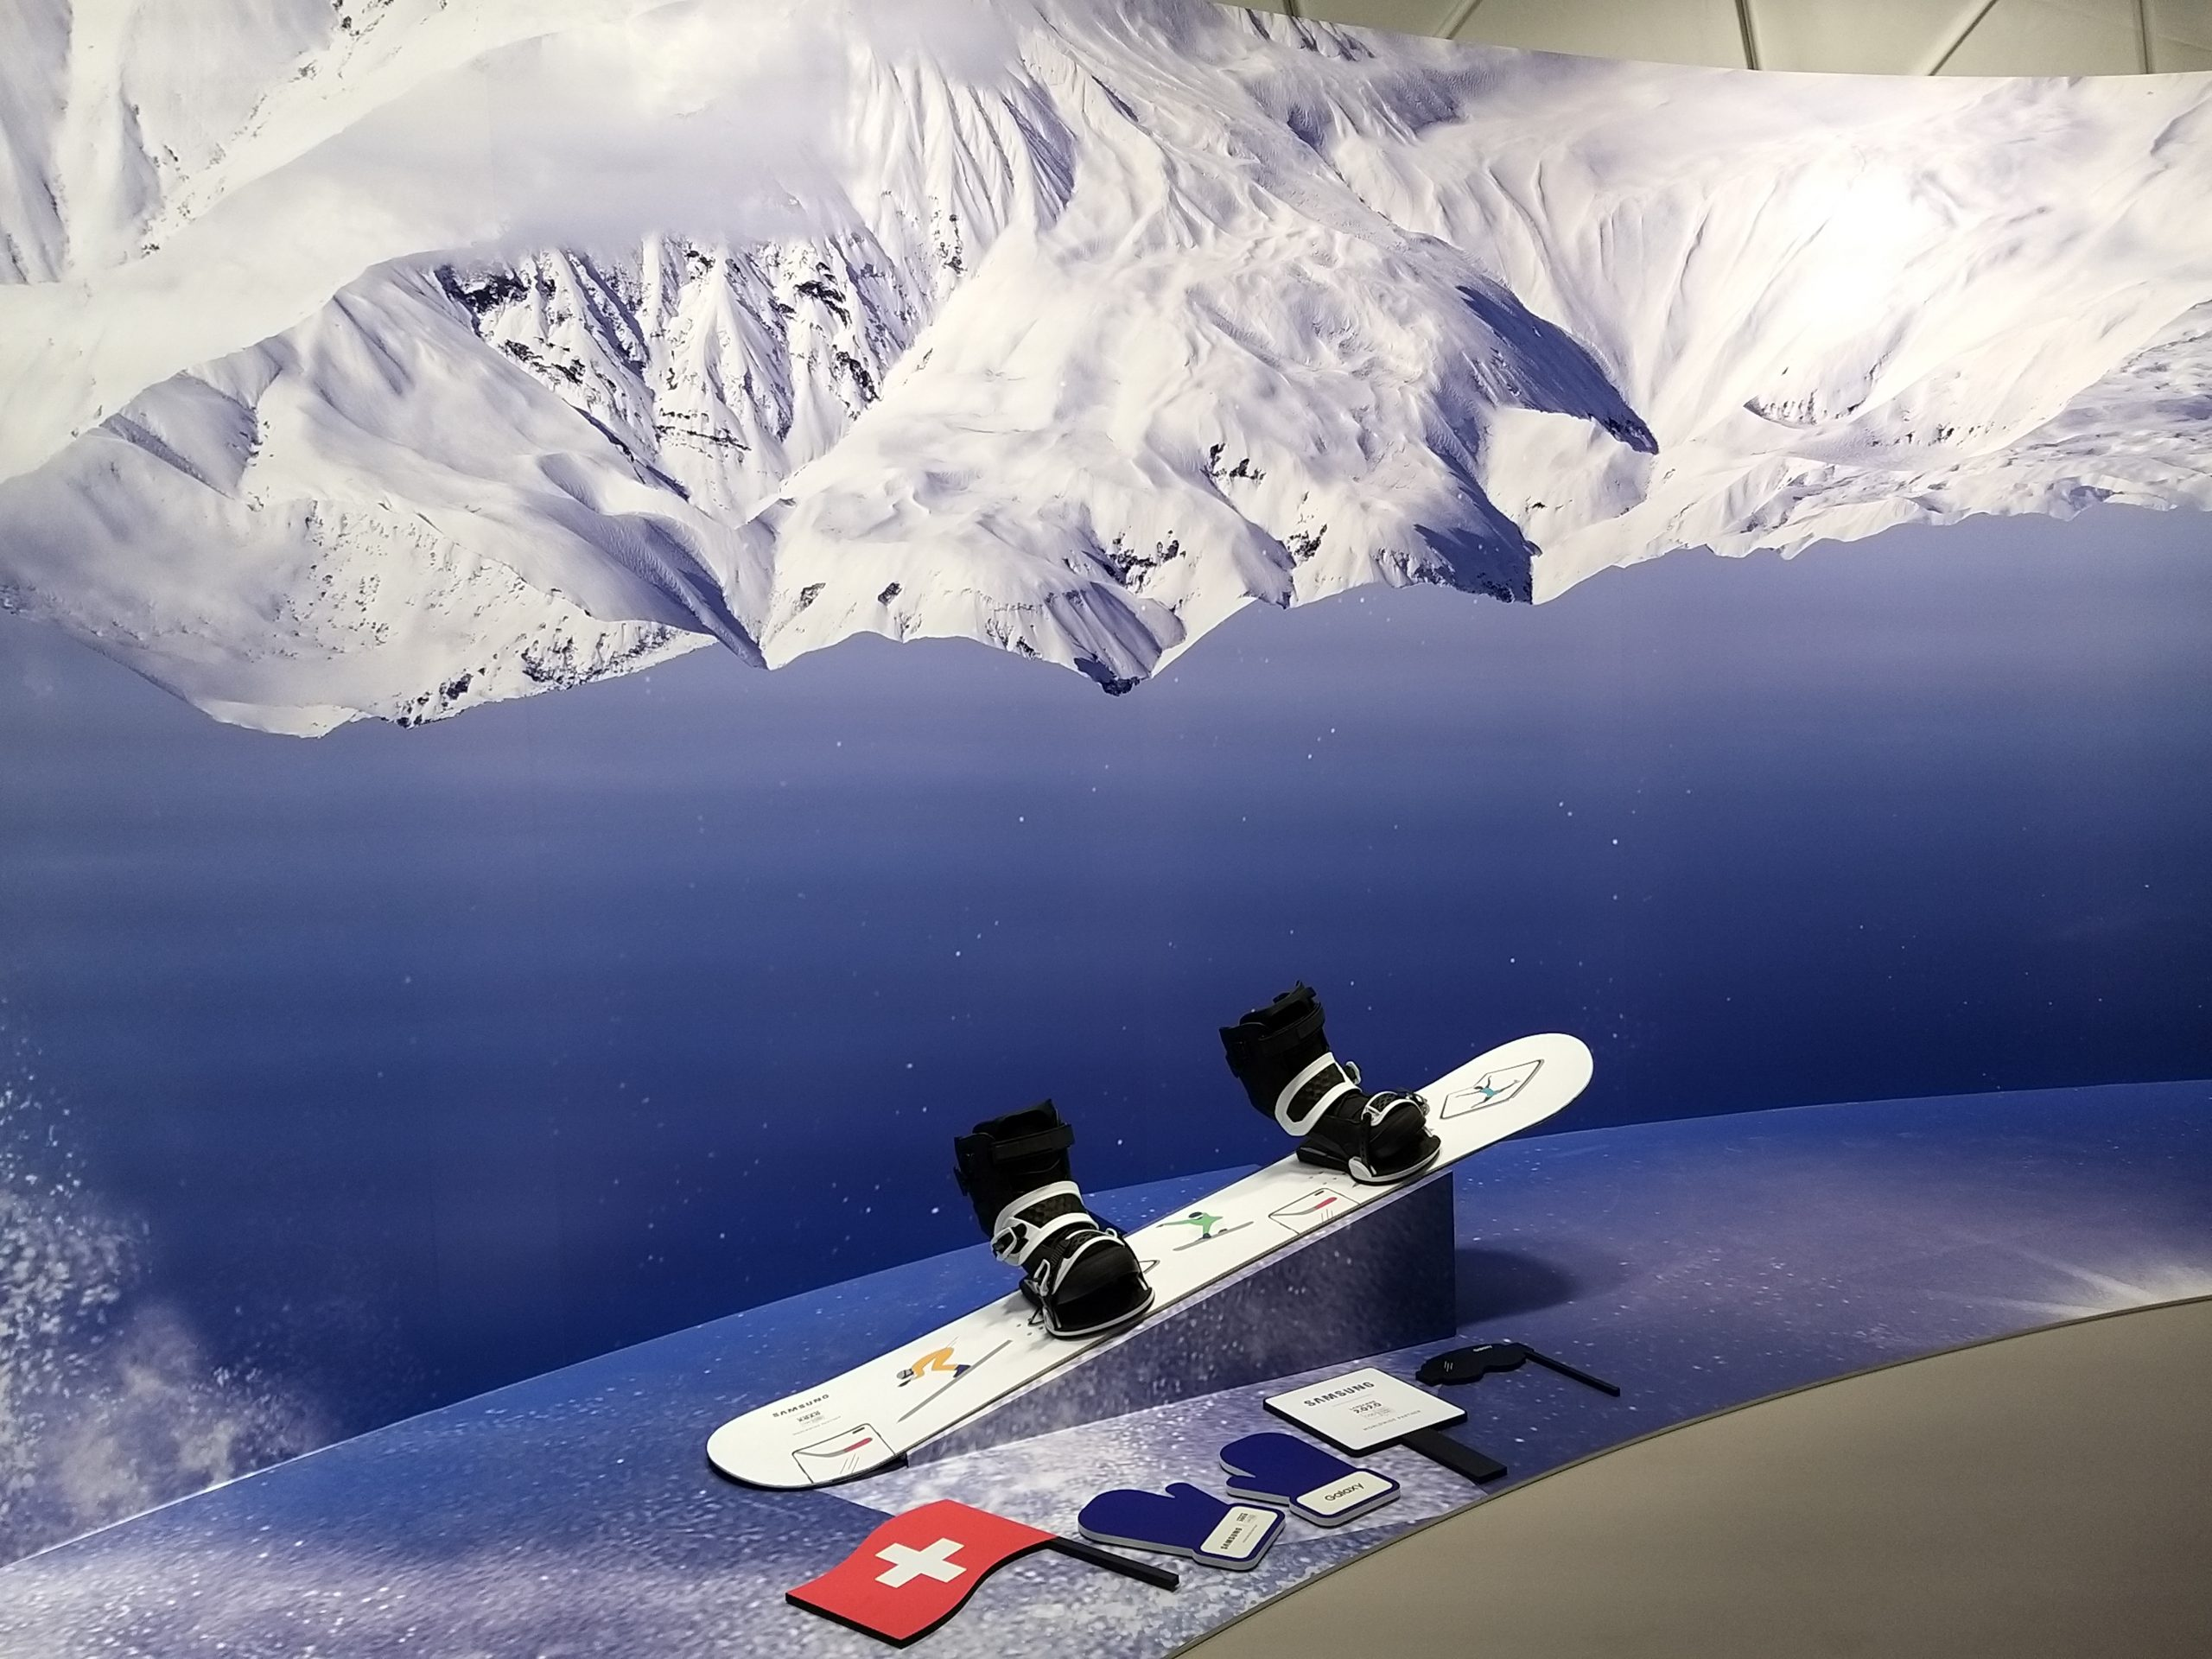 Picture of snowboard with Swiss flag and mountain in background.